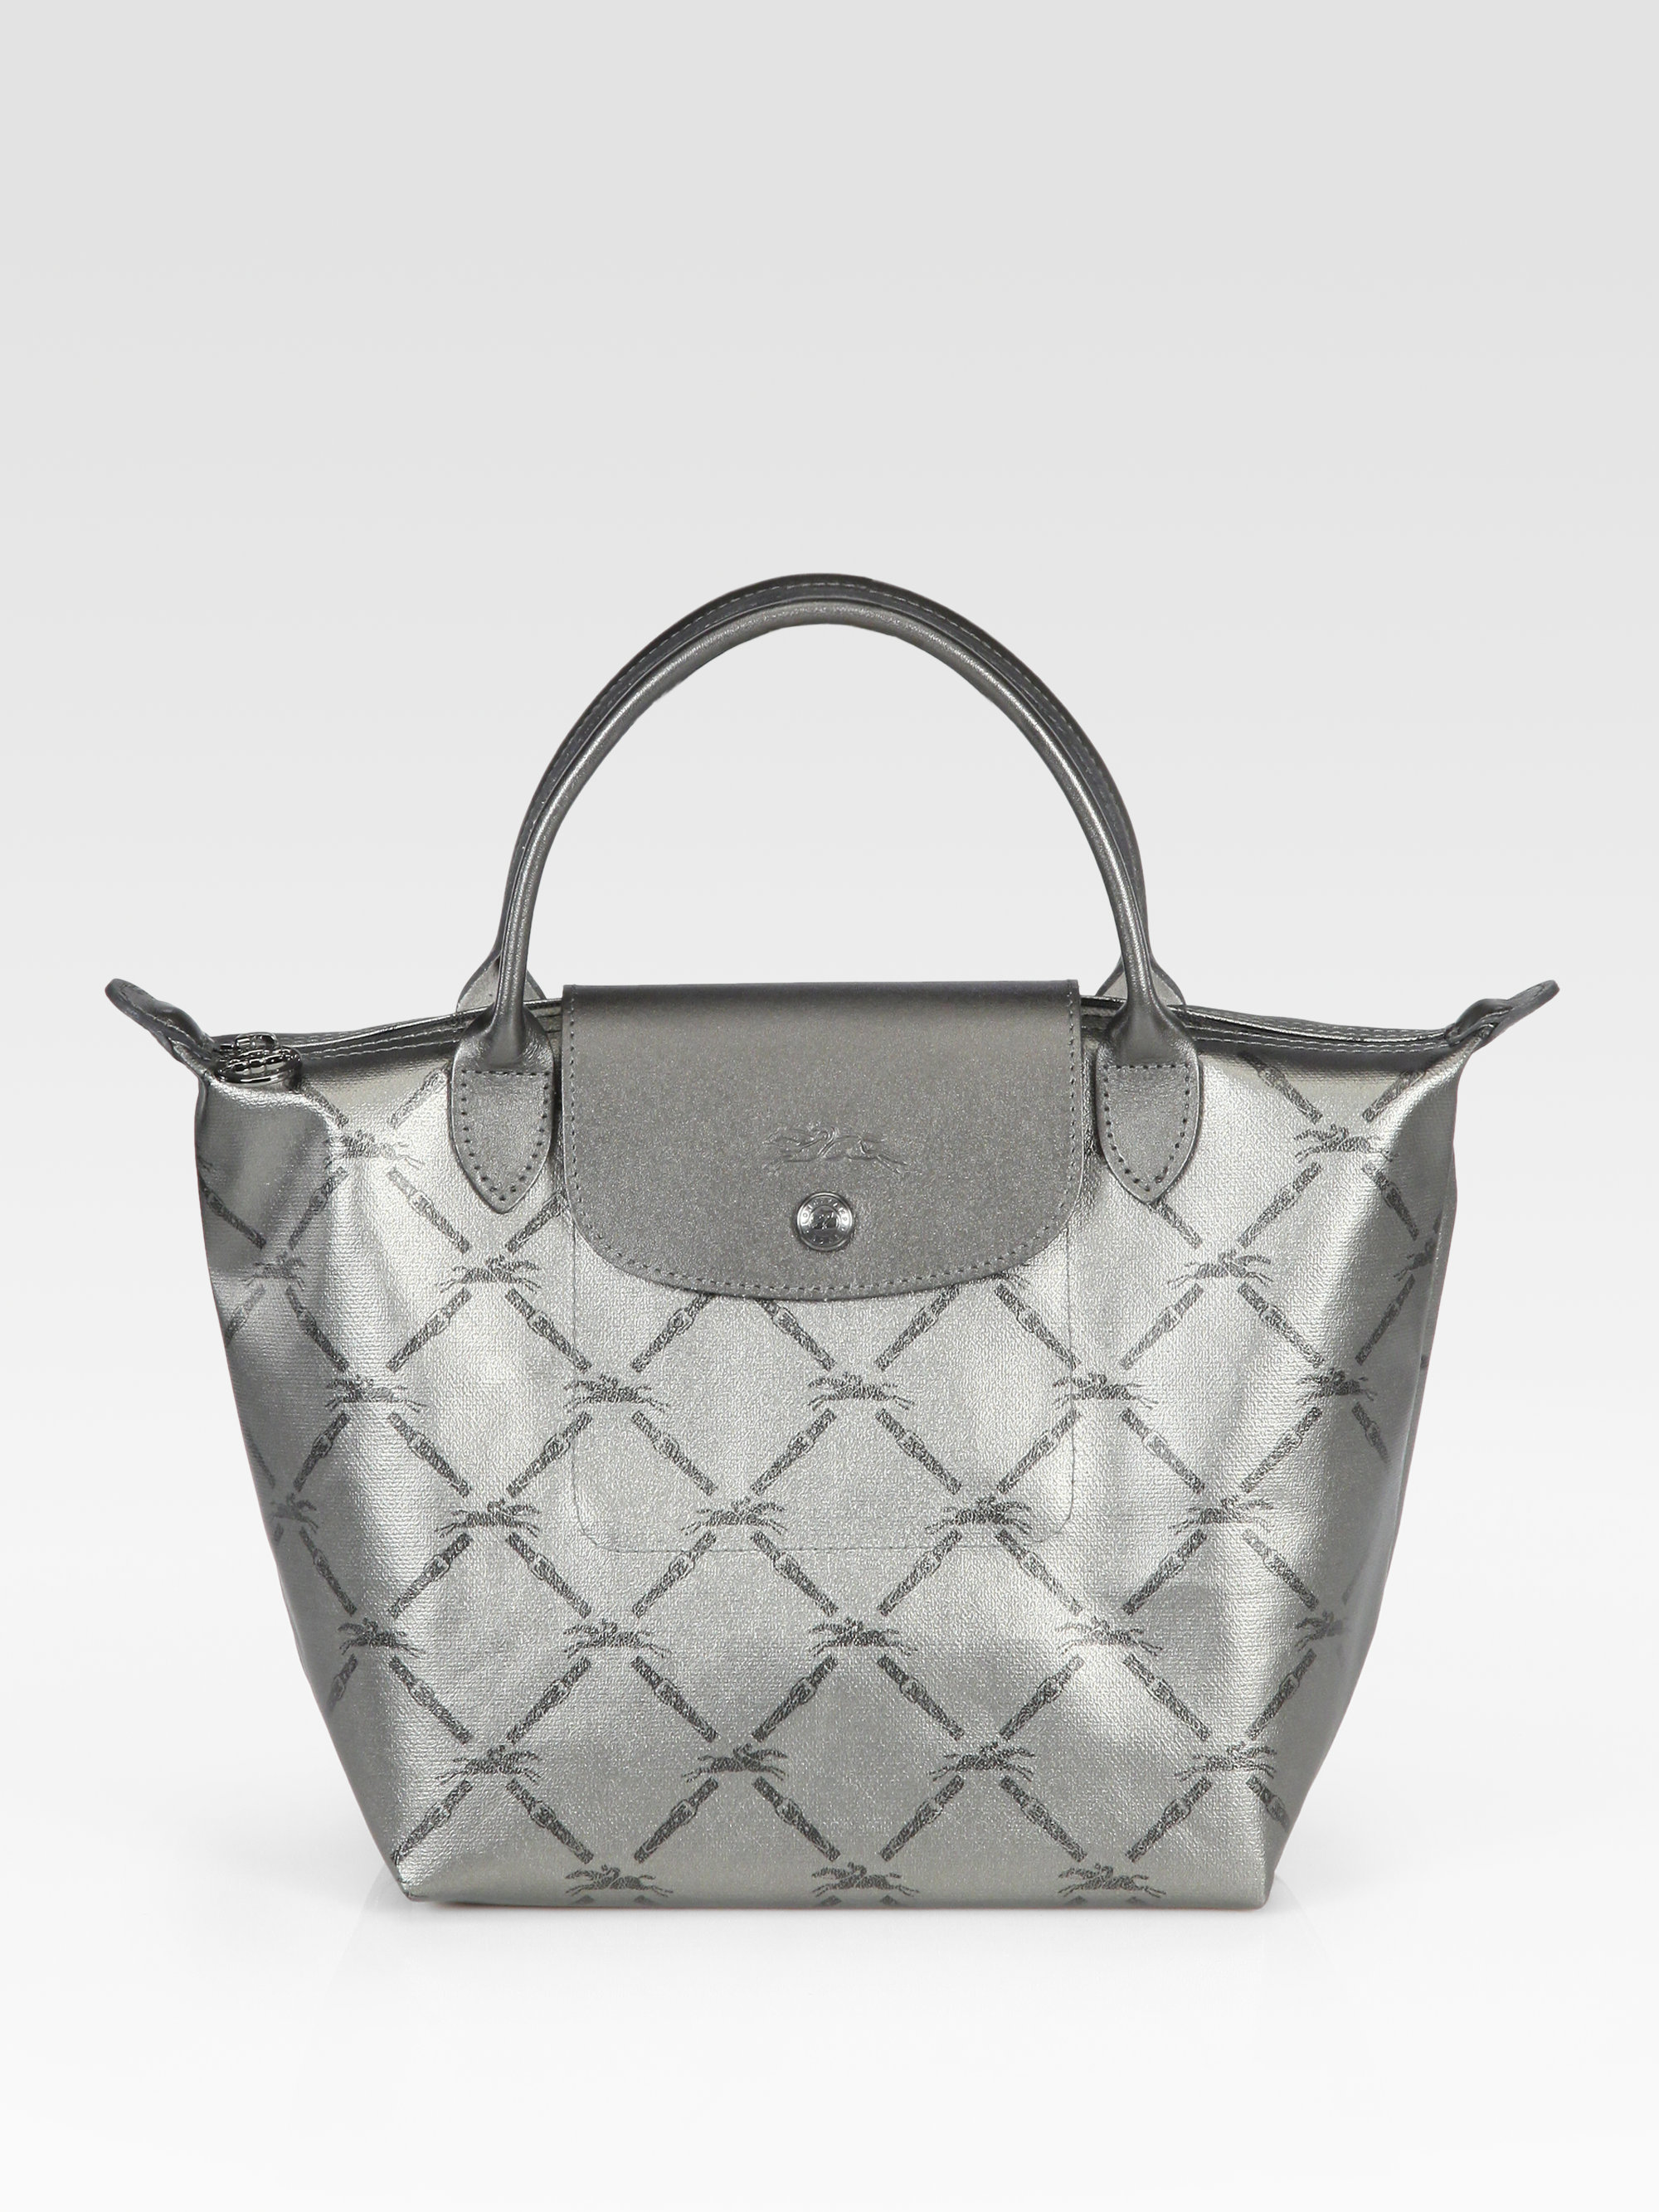 ac7c49814a8f Lyst - Longchamp Lm Metal Small Tote Bag in Gray